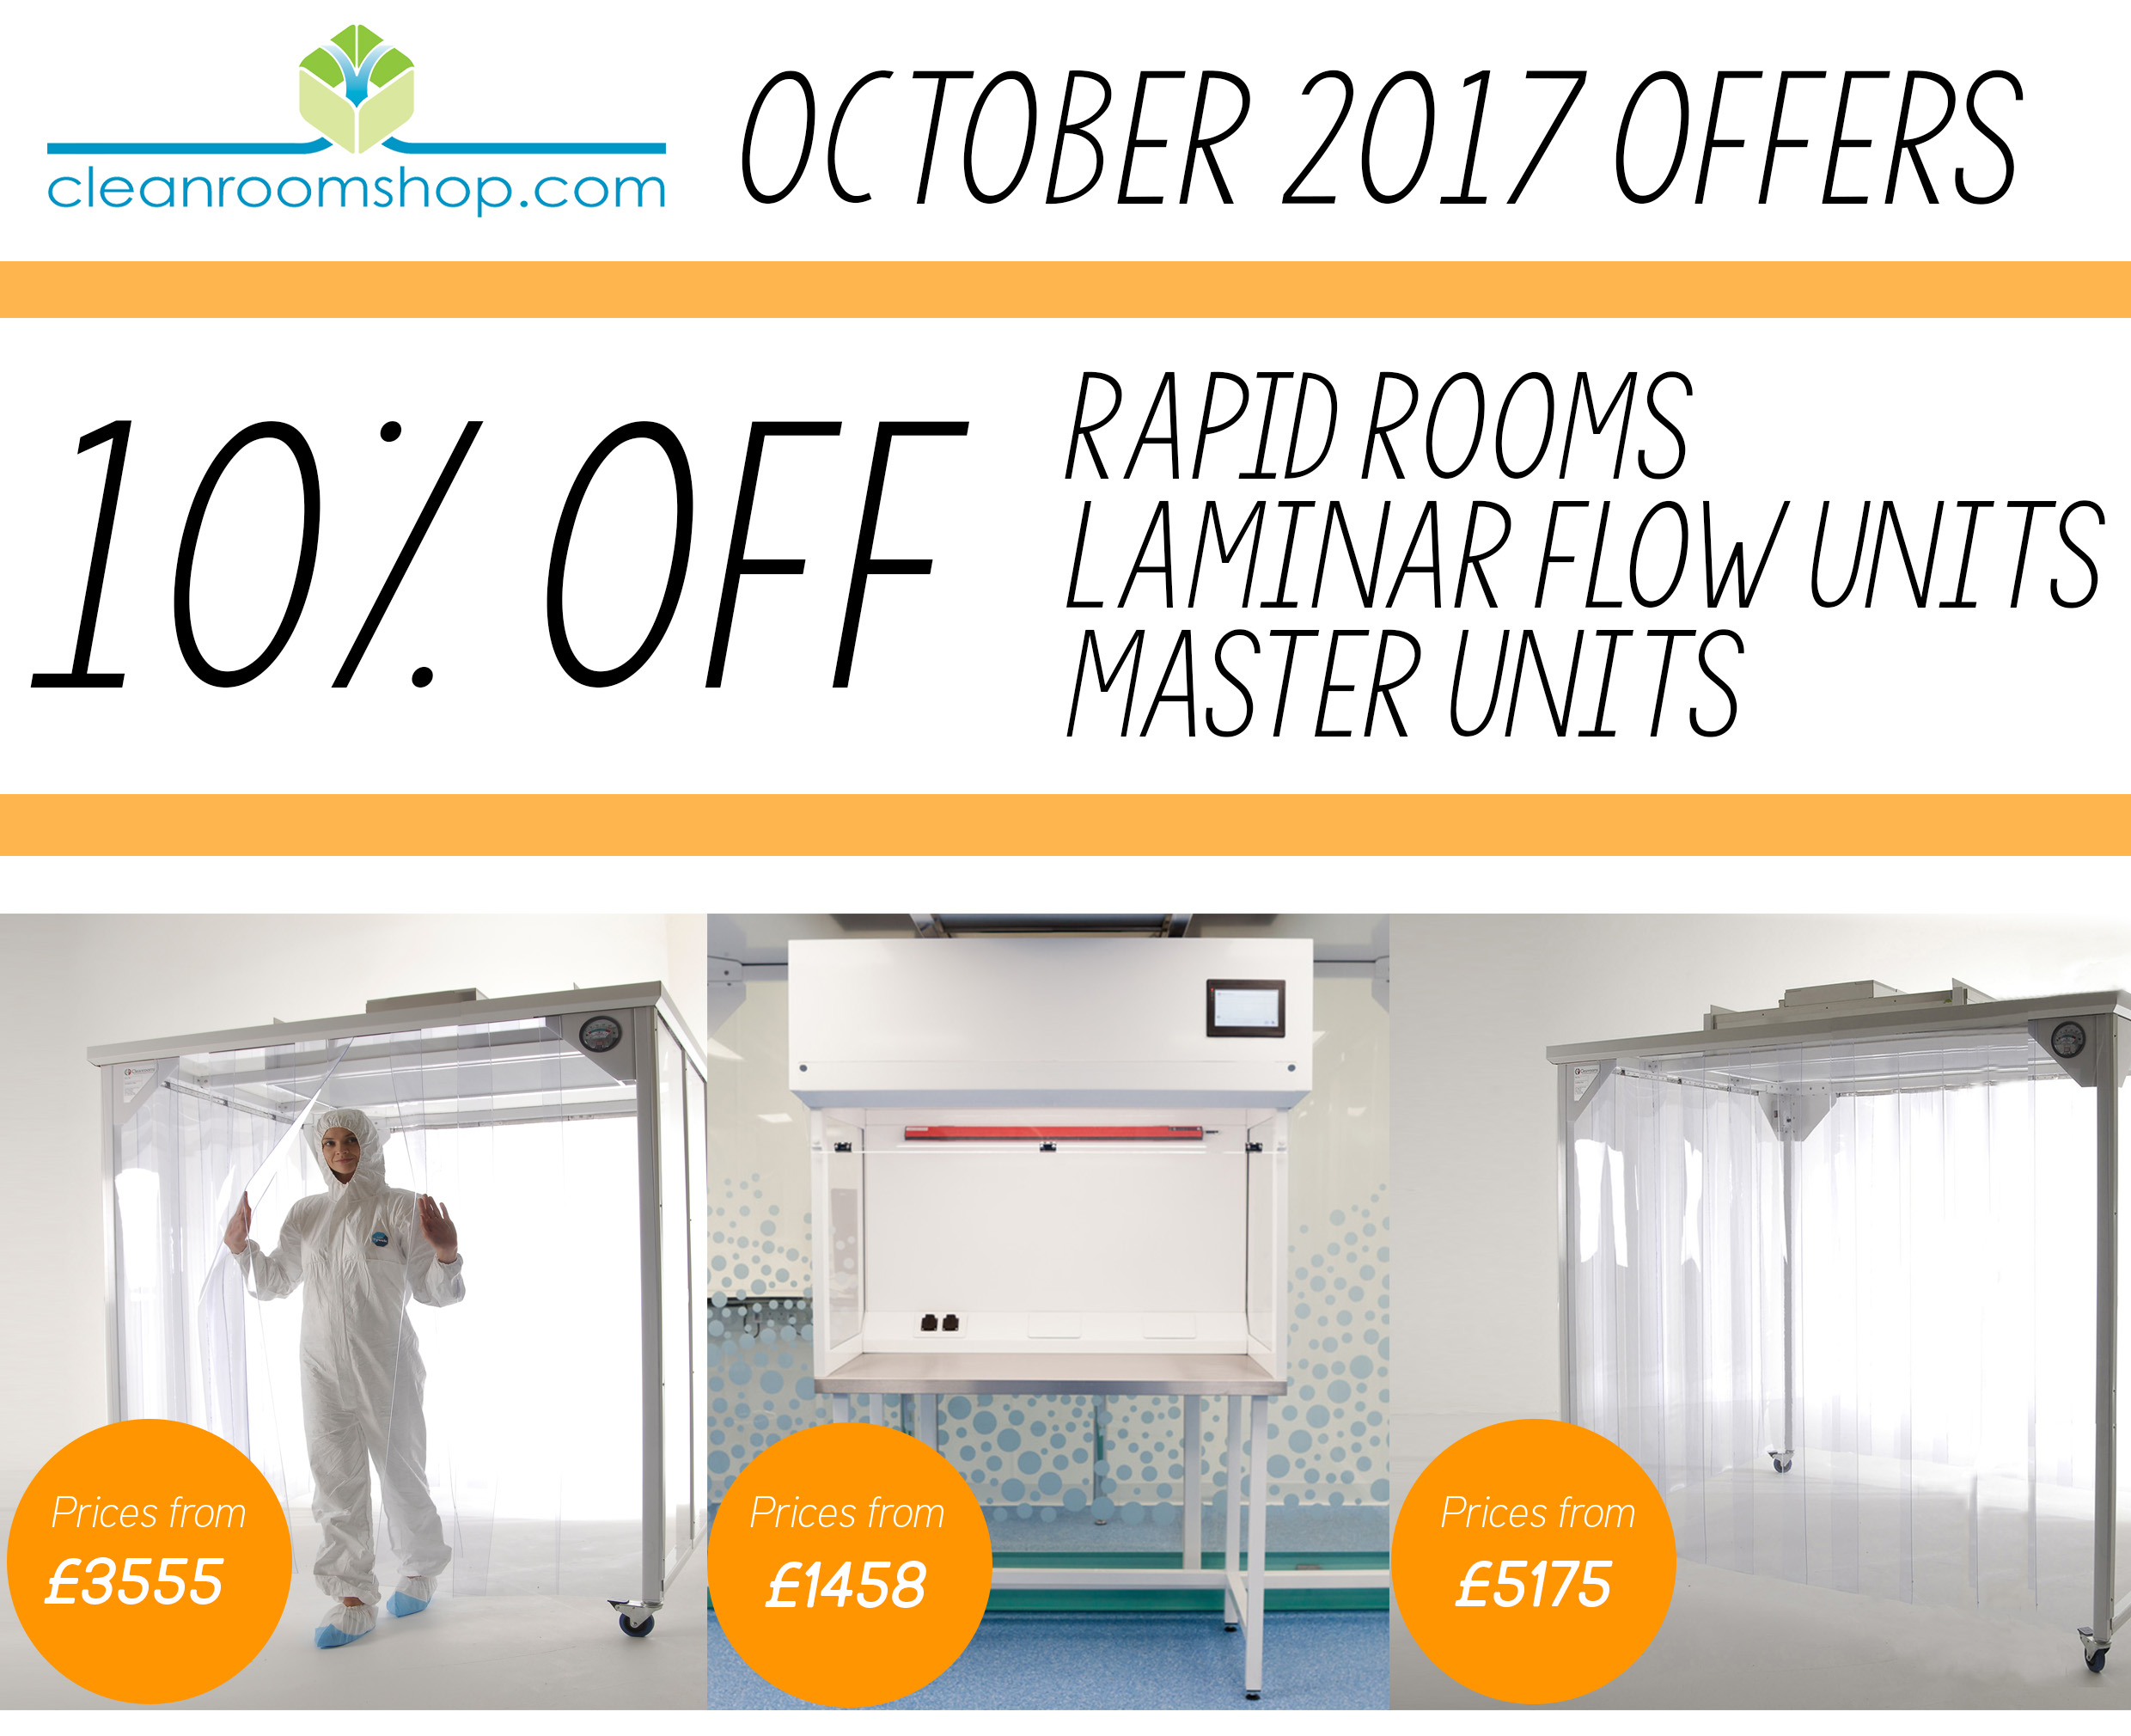 10% Off Rapid Rooms and Laminar Flow Units for limited time only